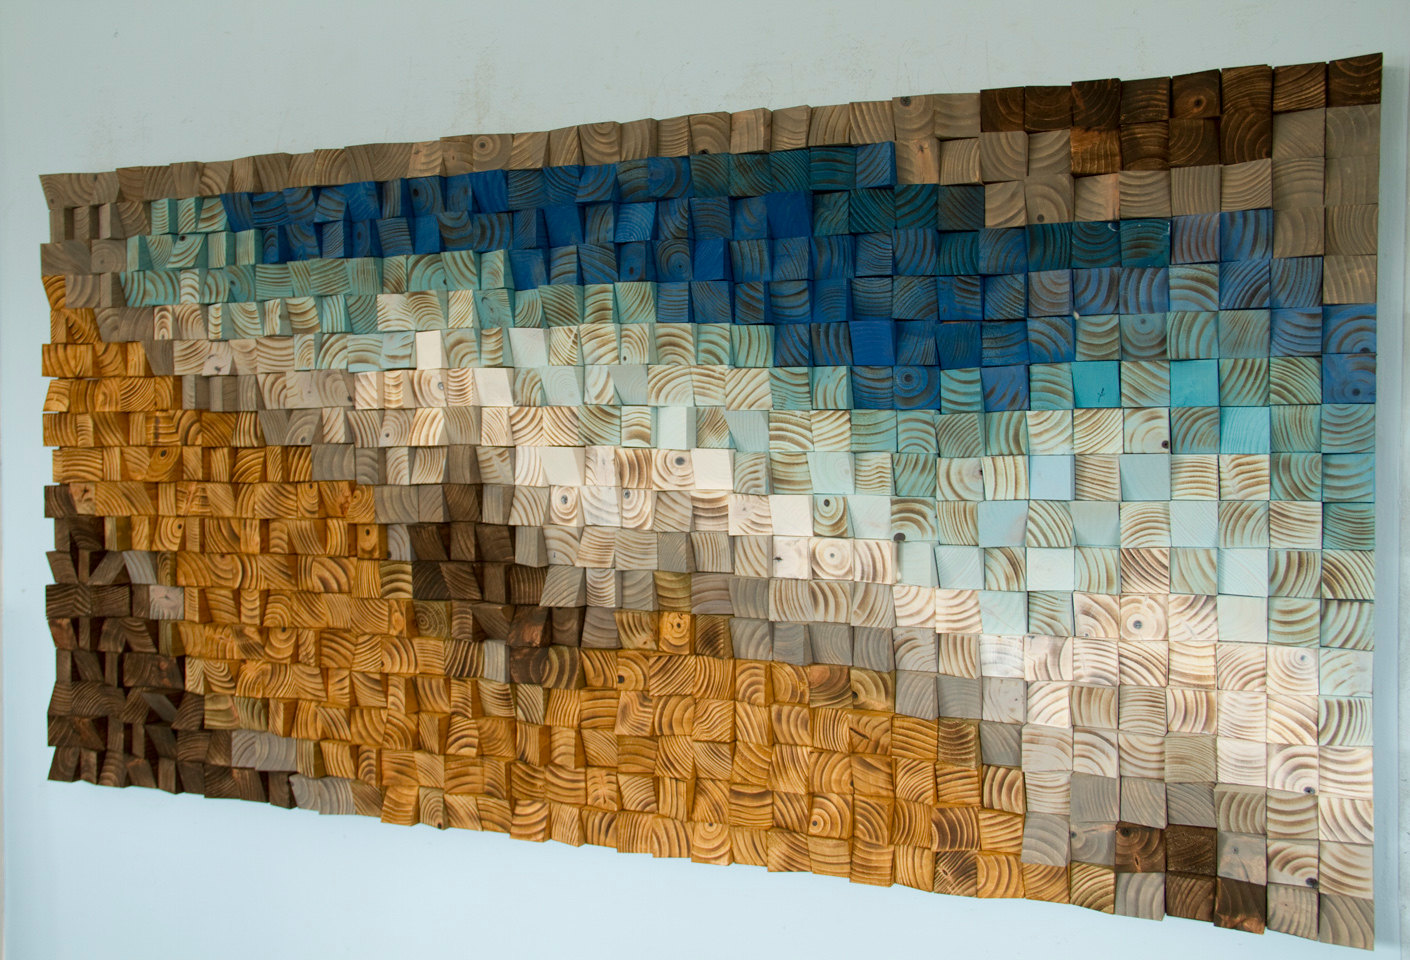 Reclaimed wood wall art wood mosaic geometric art wood Reclaimed wood wall art for sale